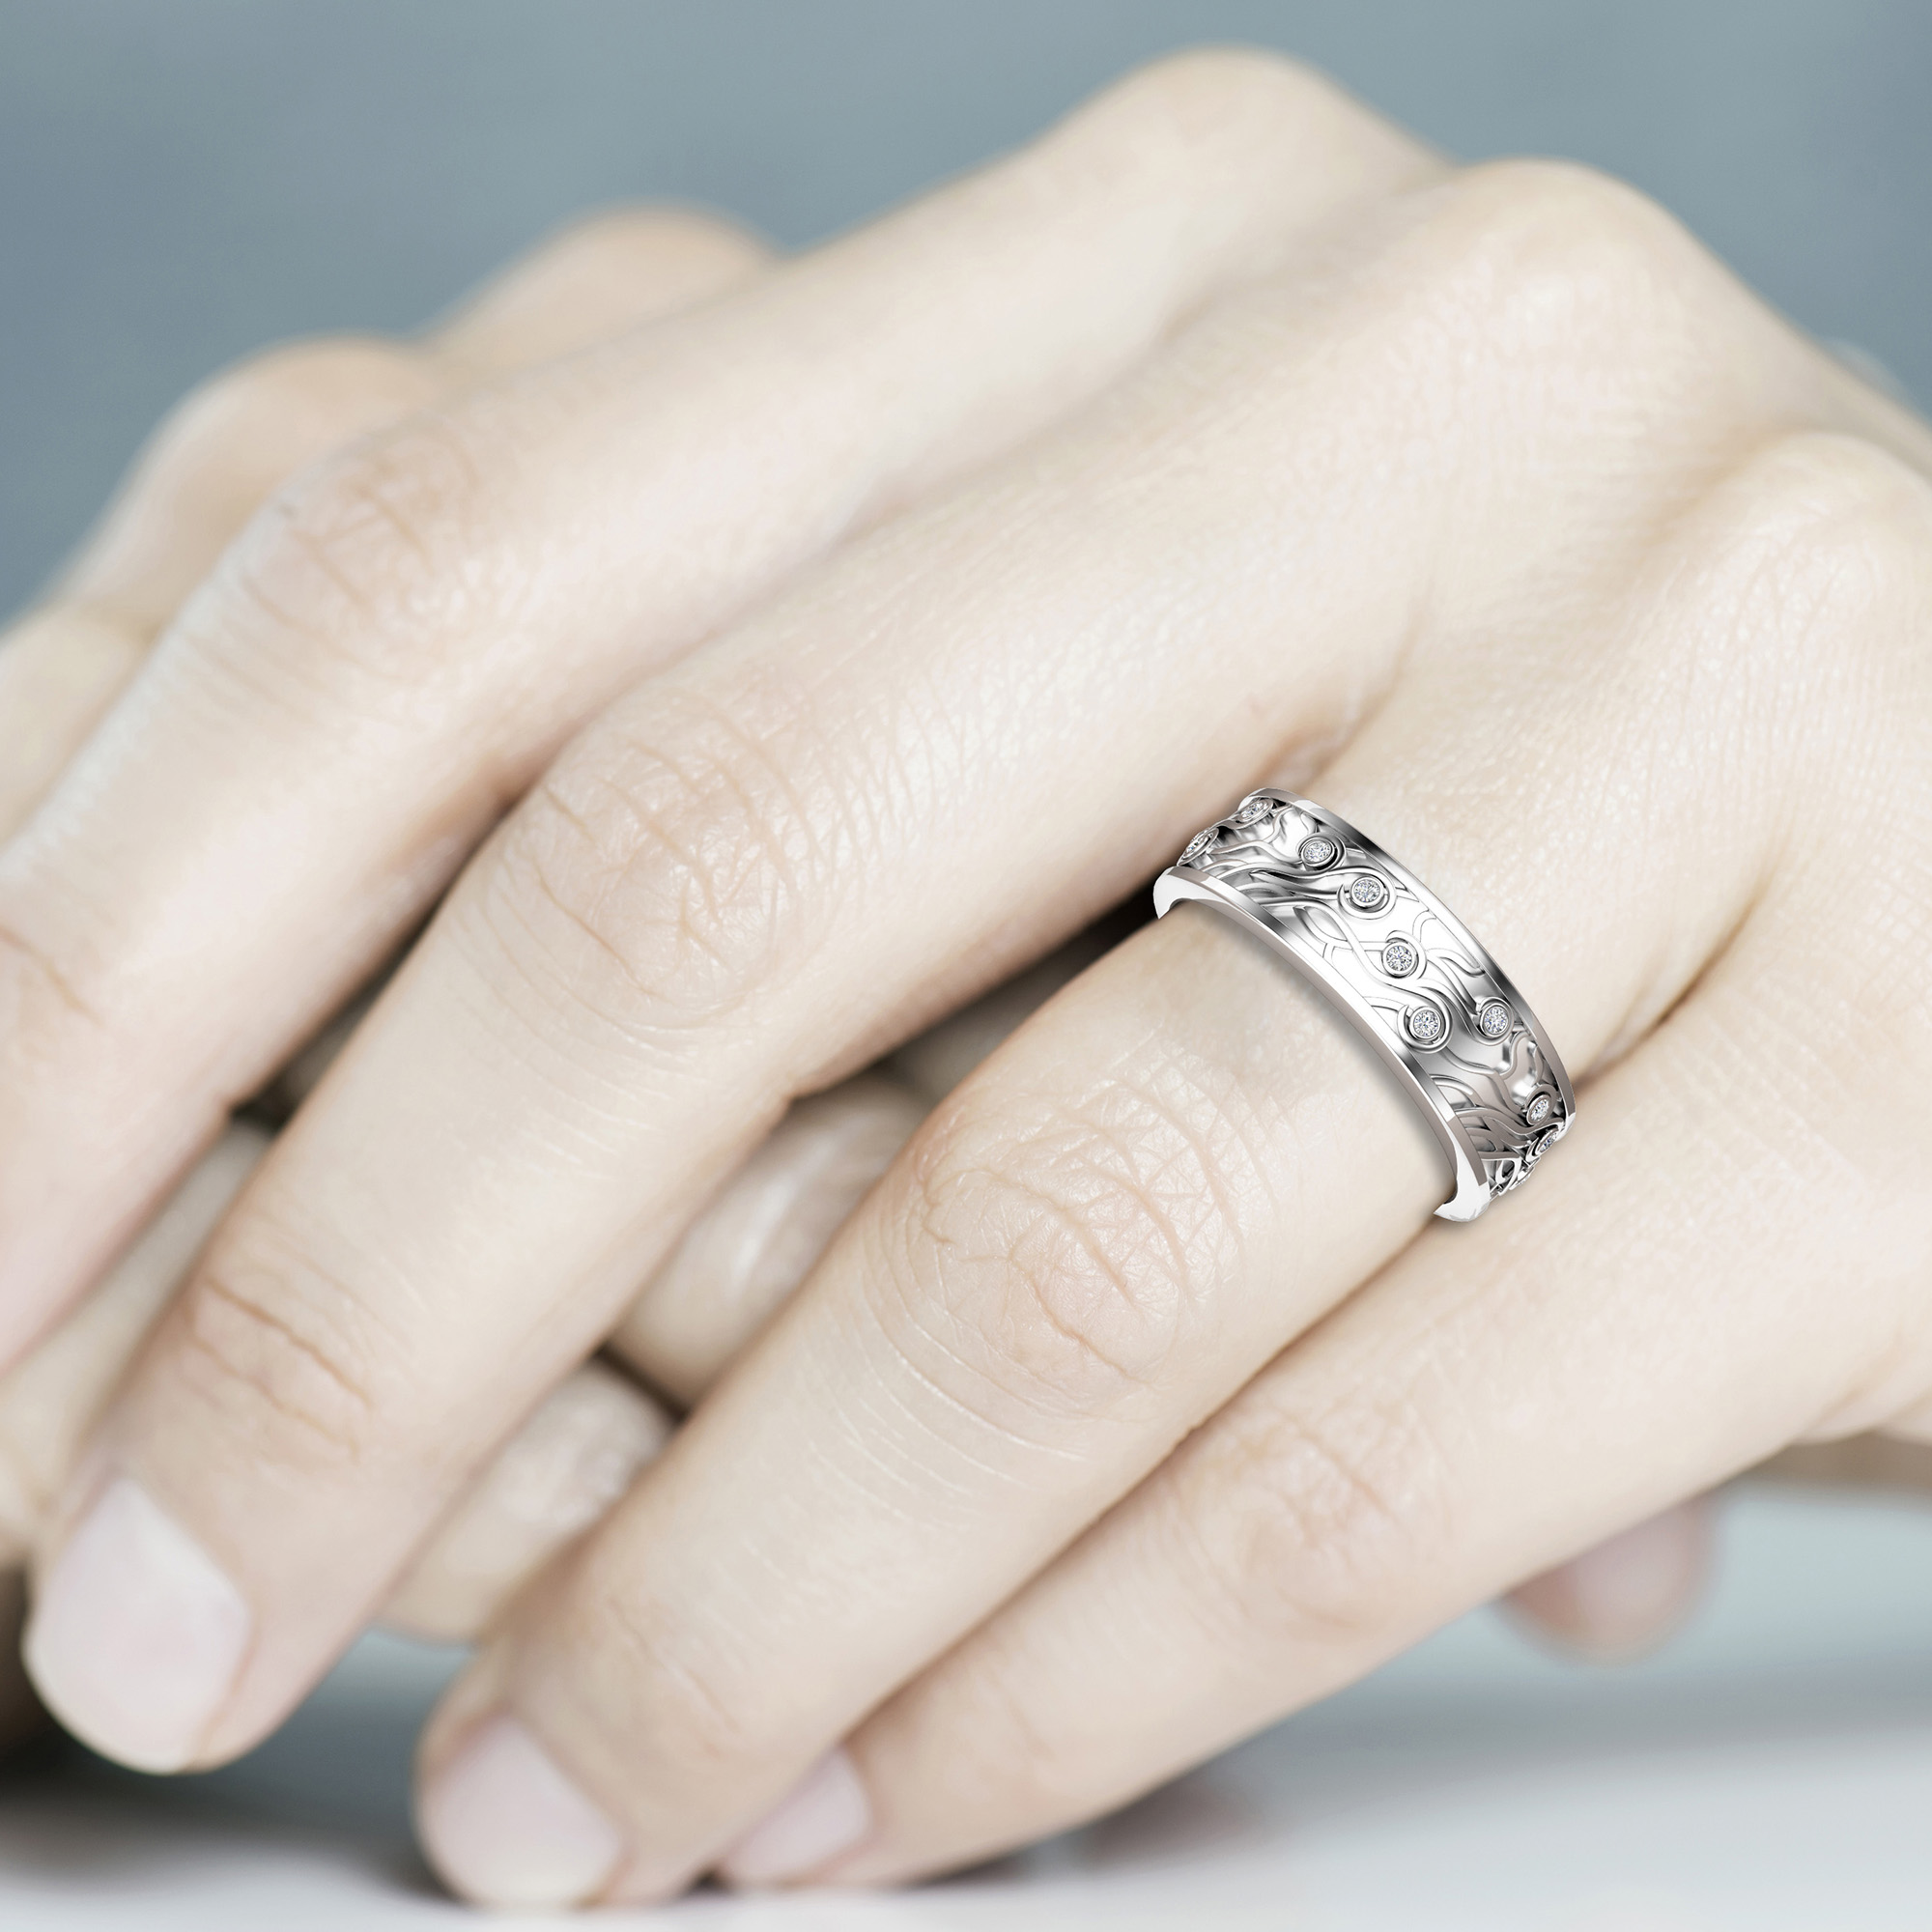 Wedding Band His And Hers-14K White Gold Wedding Rings-Couples Matching Band Set